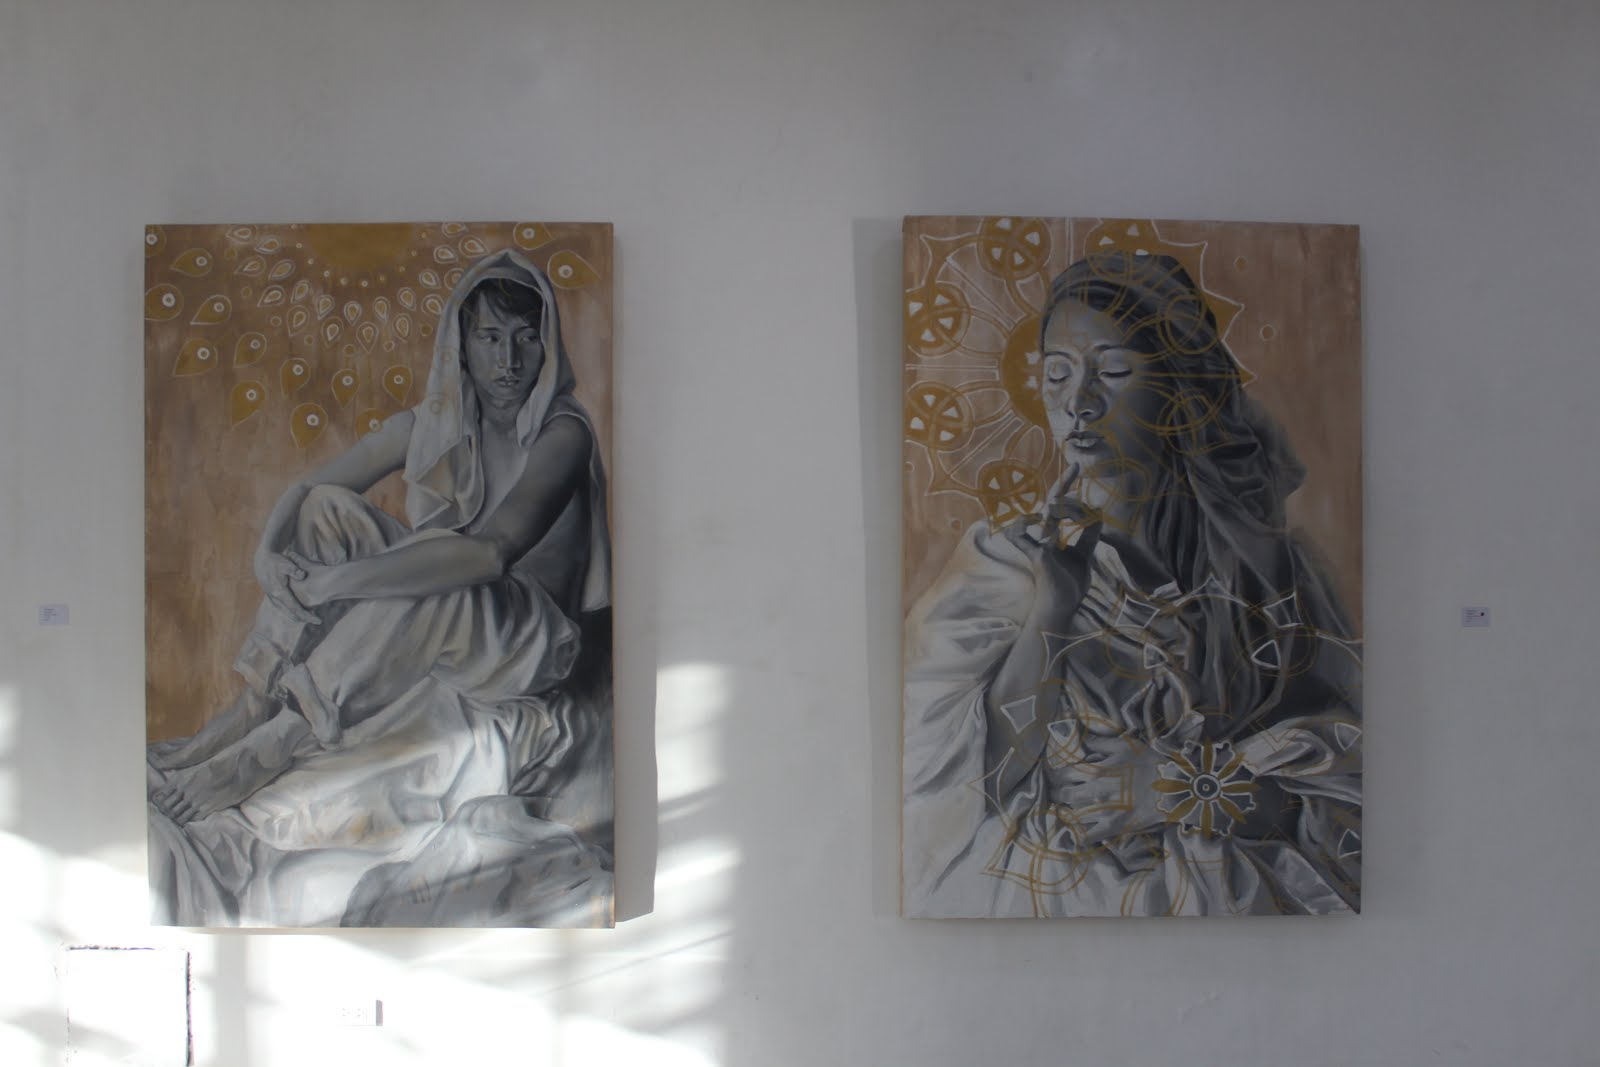 Kat Malazarte's Peaceful Defiance Art, Kat Malazarte, Iloilo, Culture, Peaceful Defiance, Portraits, Culture, Creative, Creativity, Casa Real, Exhibit, Paintings, Empowerment,